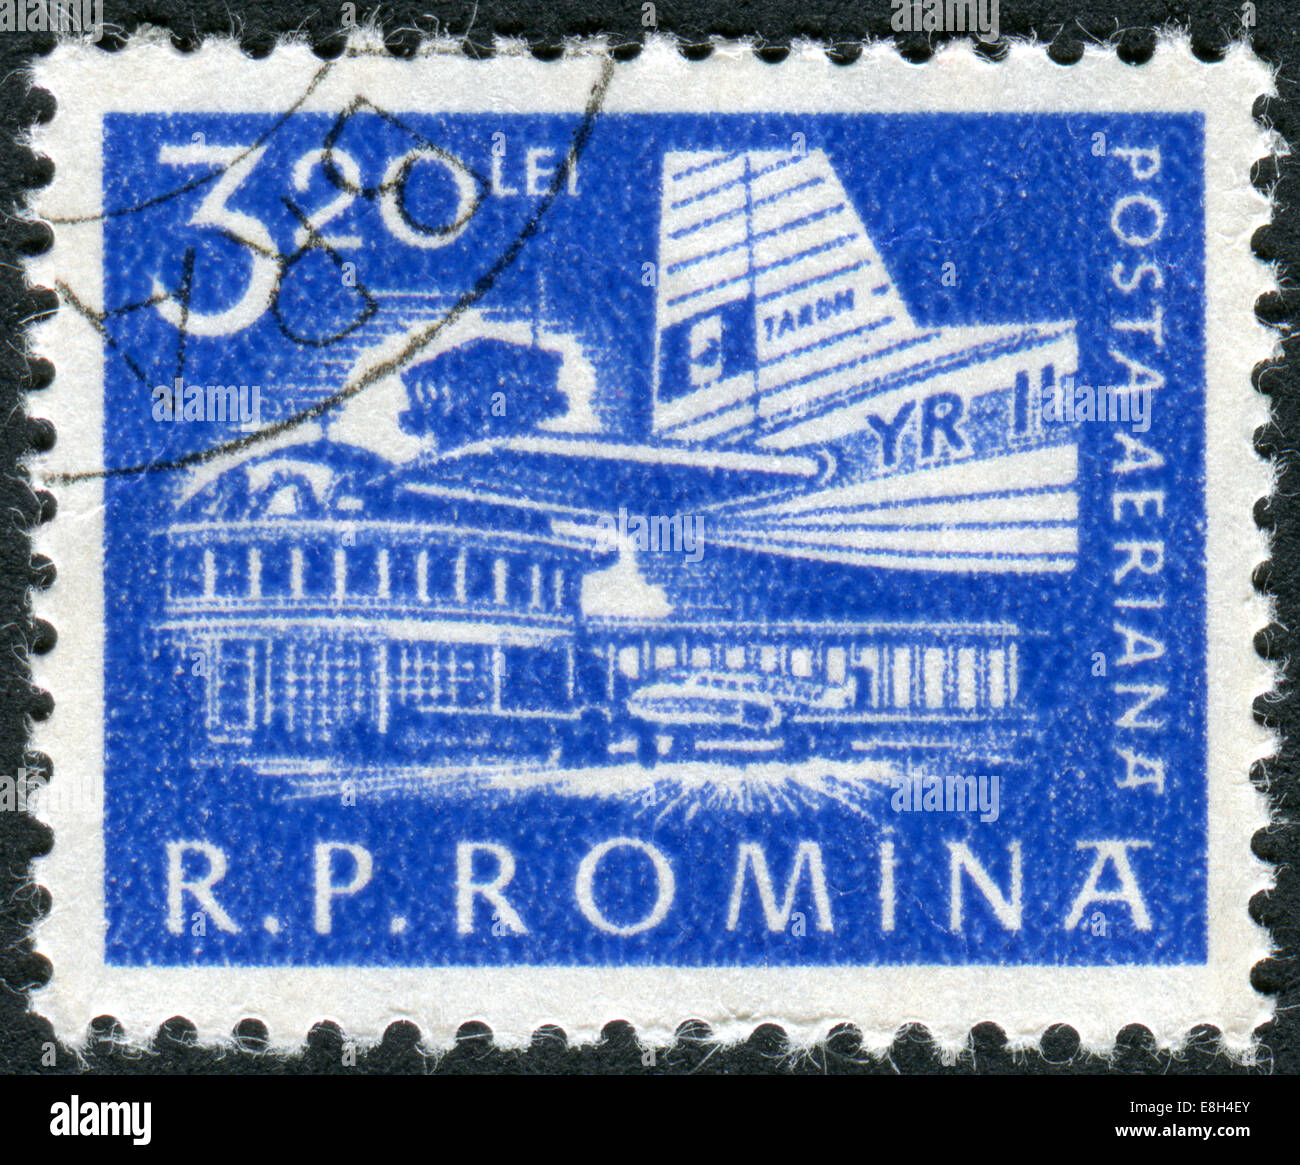 Postage stamp printed in Romania shows Airplane at Bucharest Airport - Stock Image